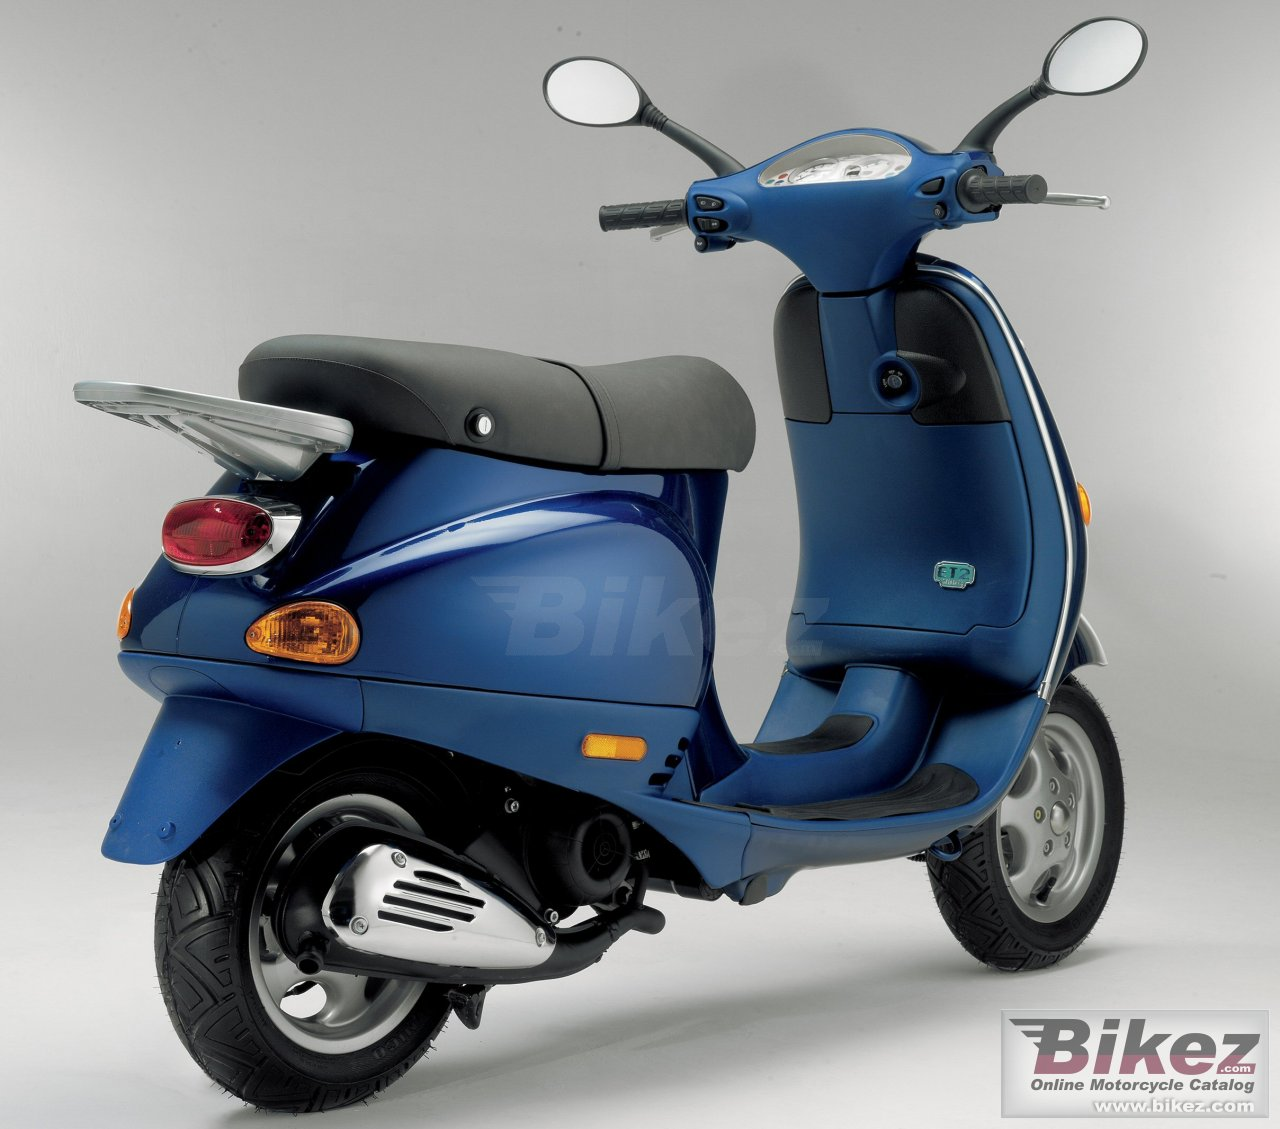 image gallery 2004 vespa 50 scooter. Black Bedroom Furniture Sets. Home Design Ideas